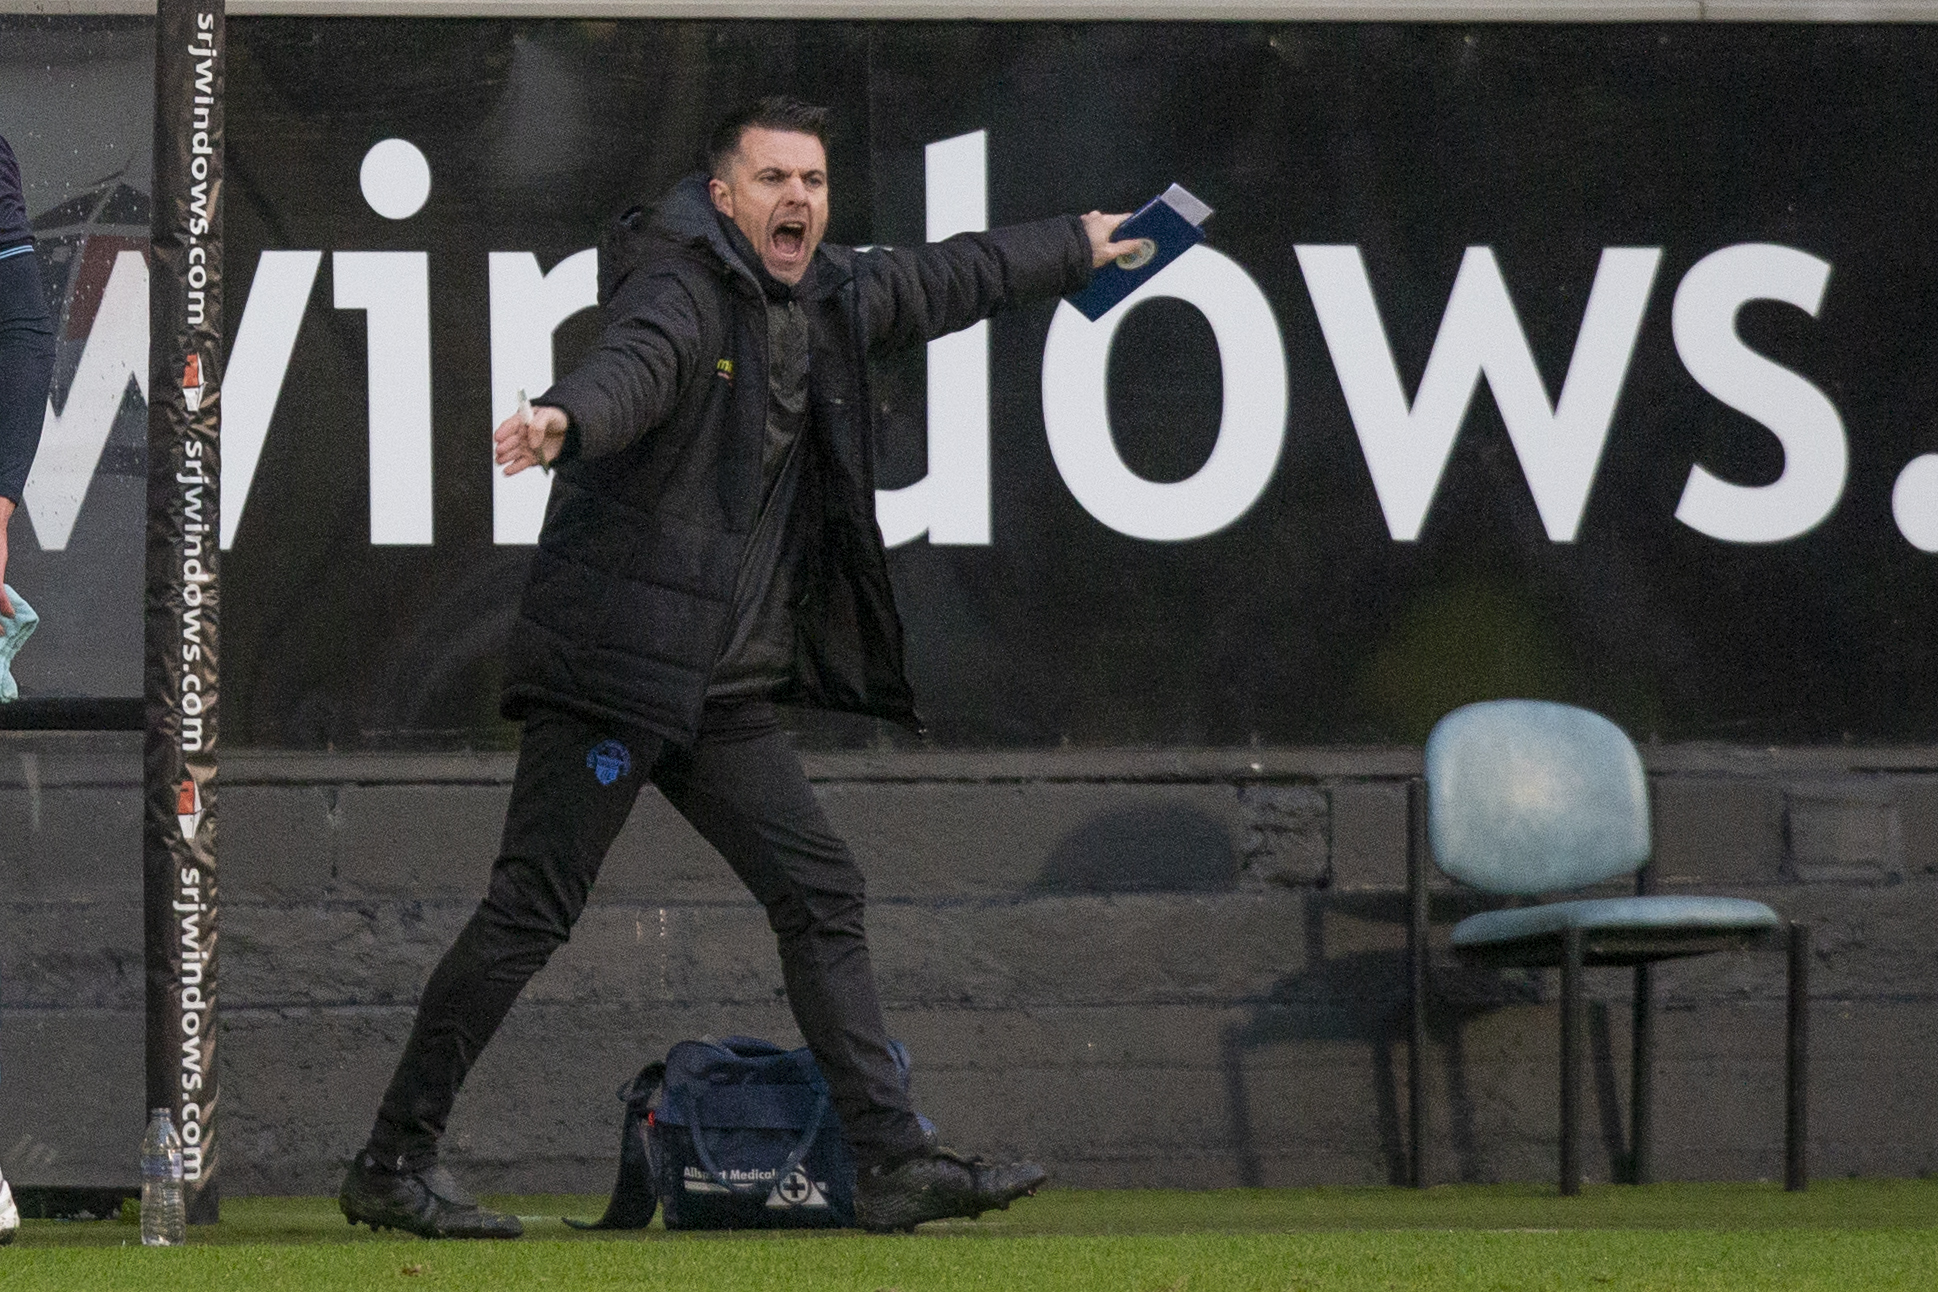 Morton boss: 'We must stay vigilant after player's positive Covid-19 test'